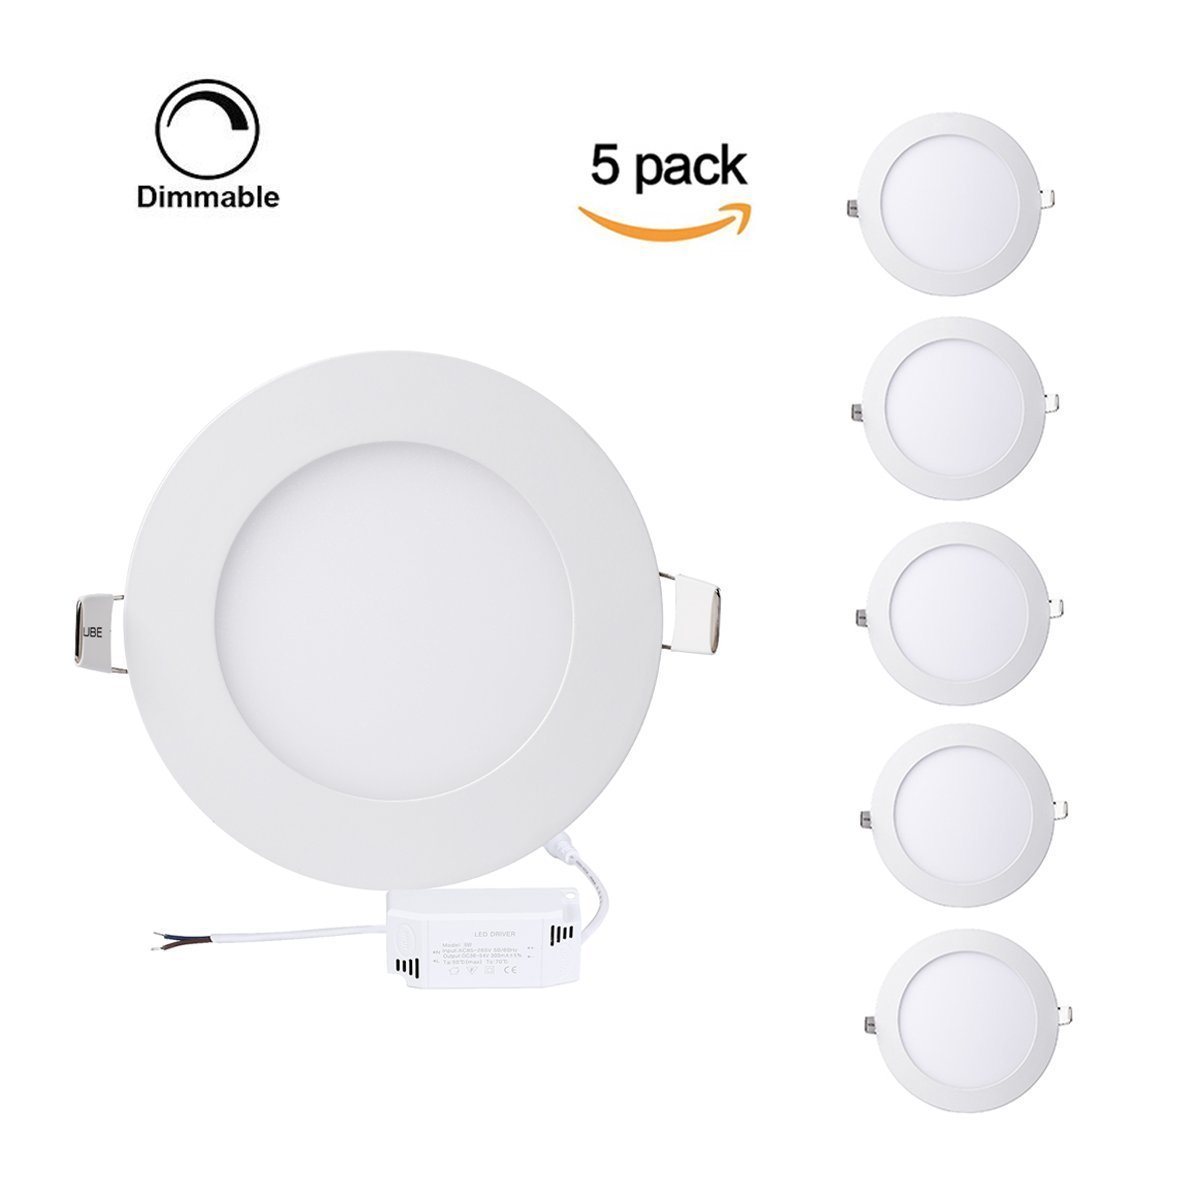 Pack of 5 Units Dimmable Round LED Panel Light,Ultra-thin Recessed Ceiling Light,Round led Flat panel light Downlight with 120V Isolation Driver for Home, Office, Commercial Lighting (12W, 5000K)